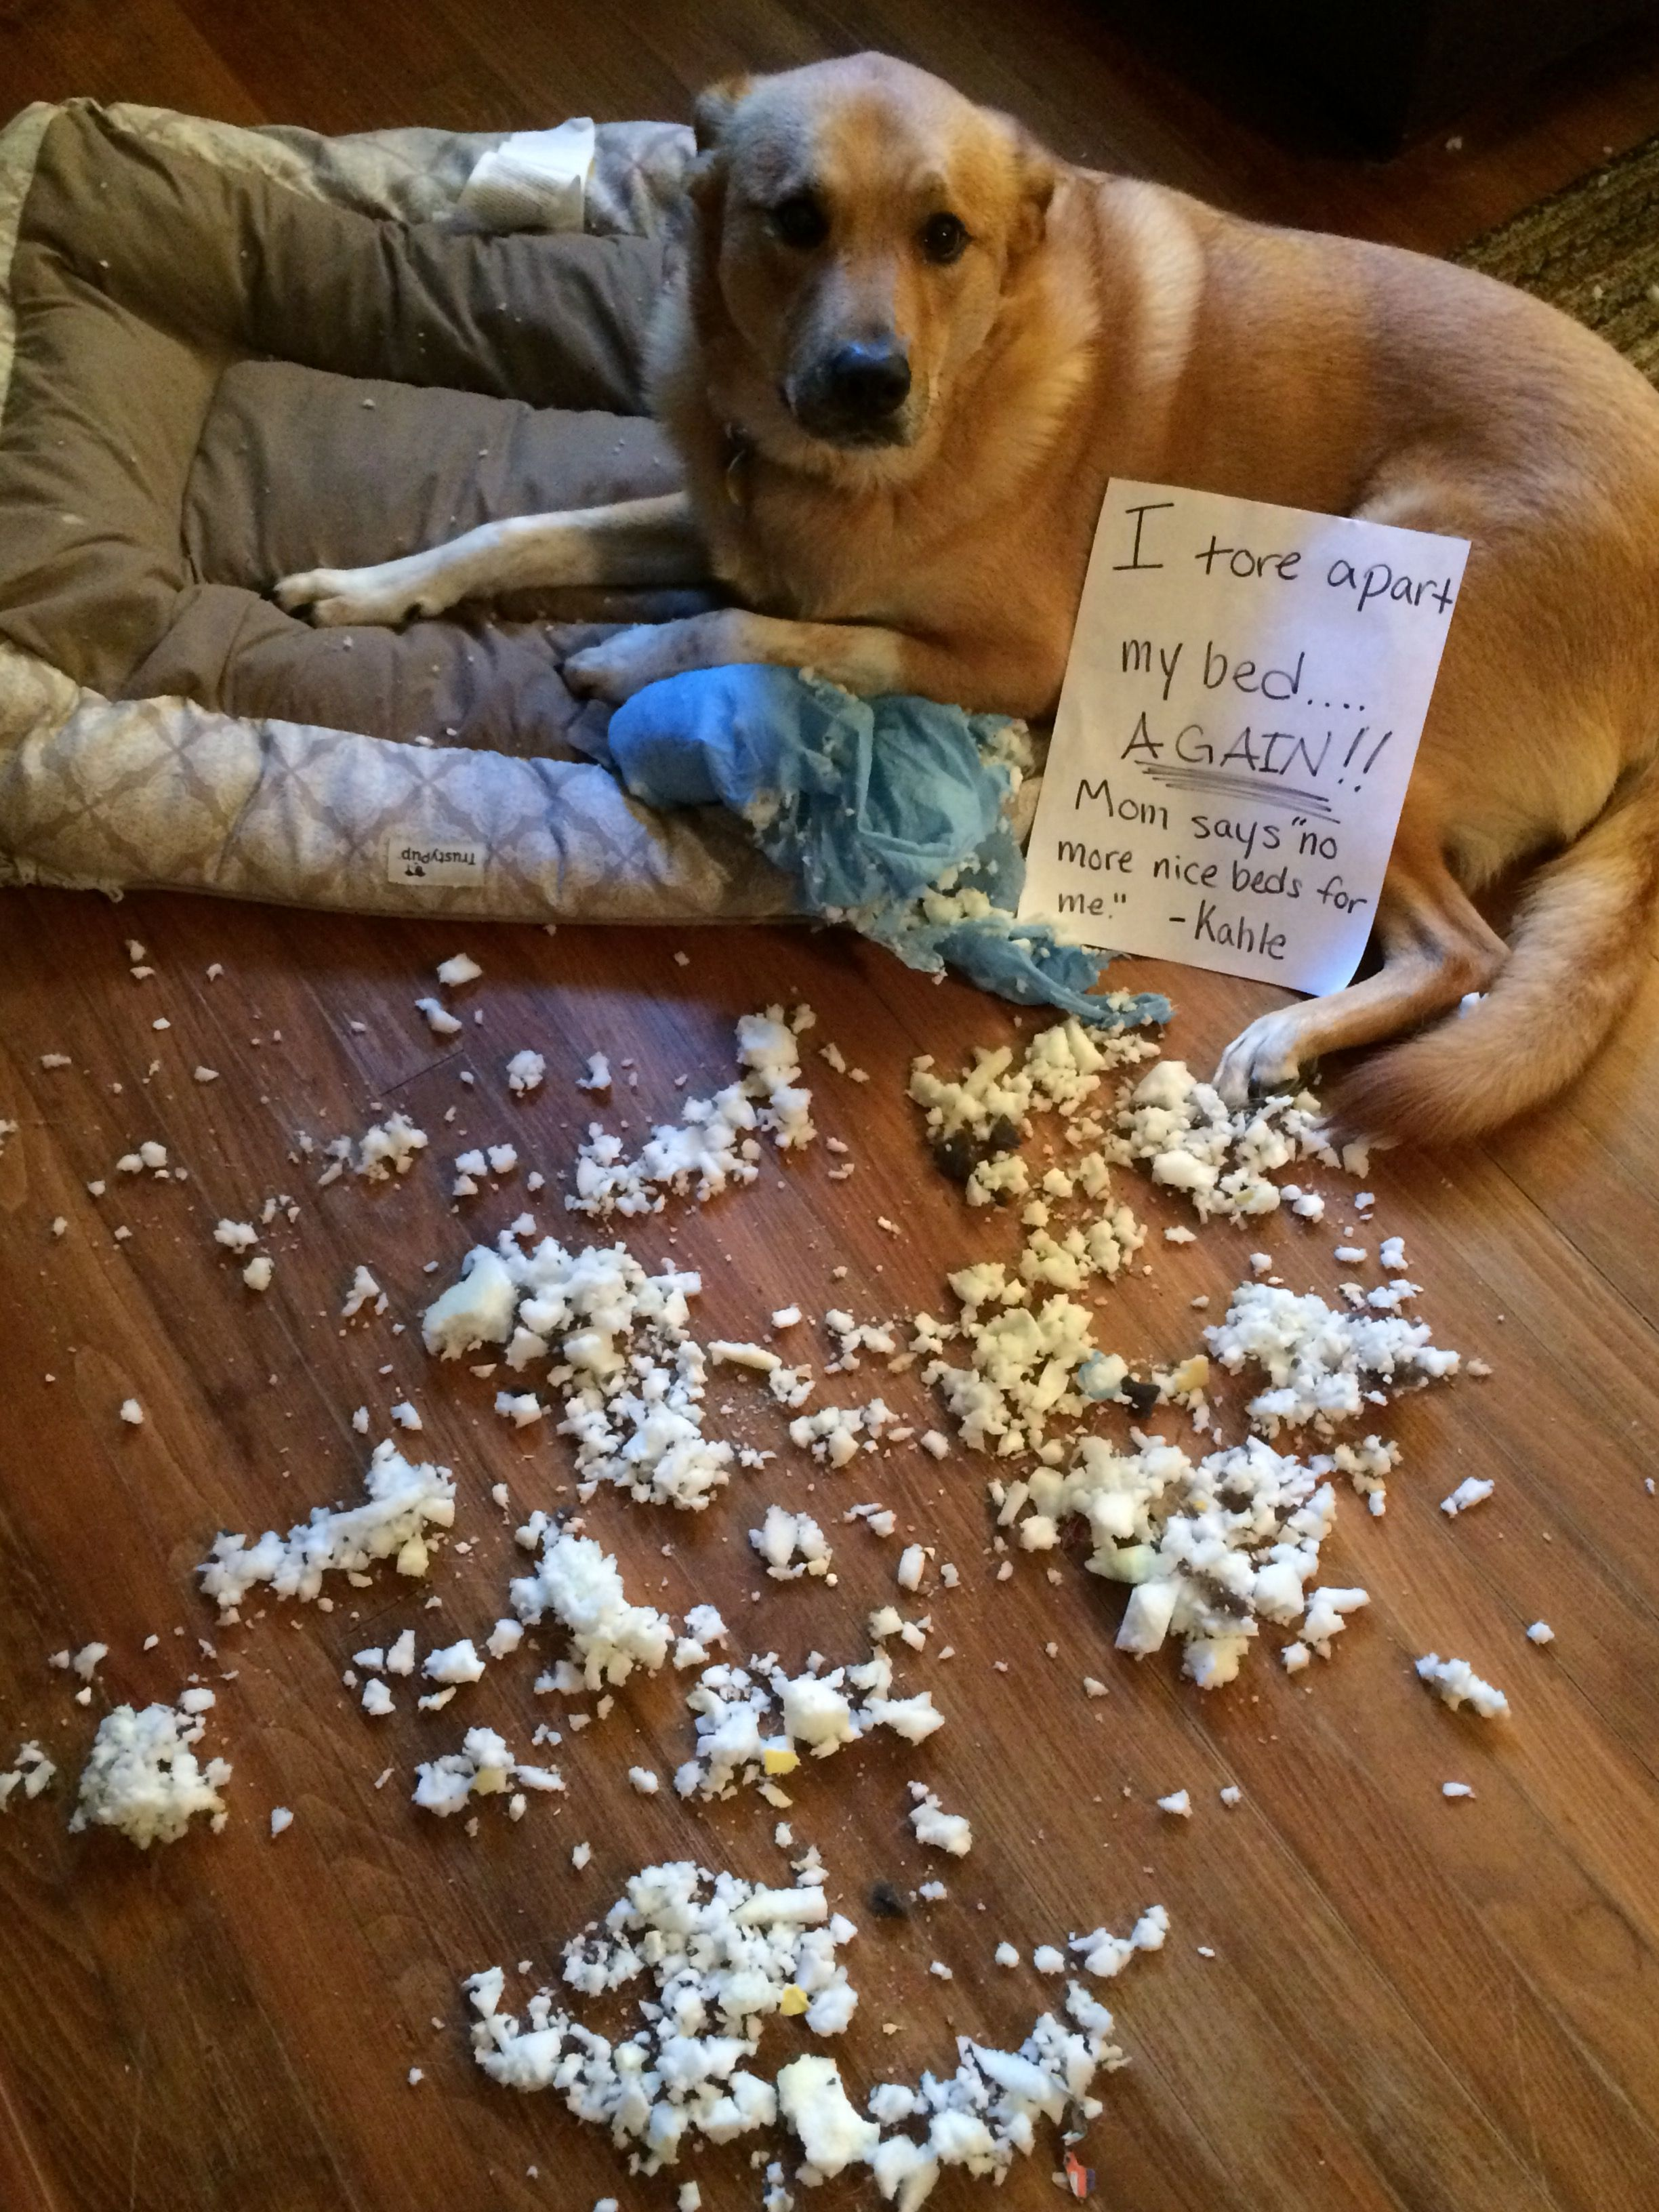 Kahle The Bed Snob Funny Dog Beds Funny Dog Pictures Animal